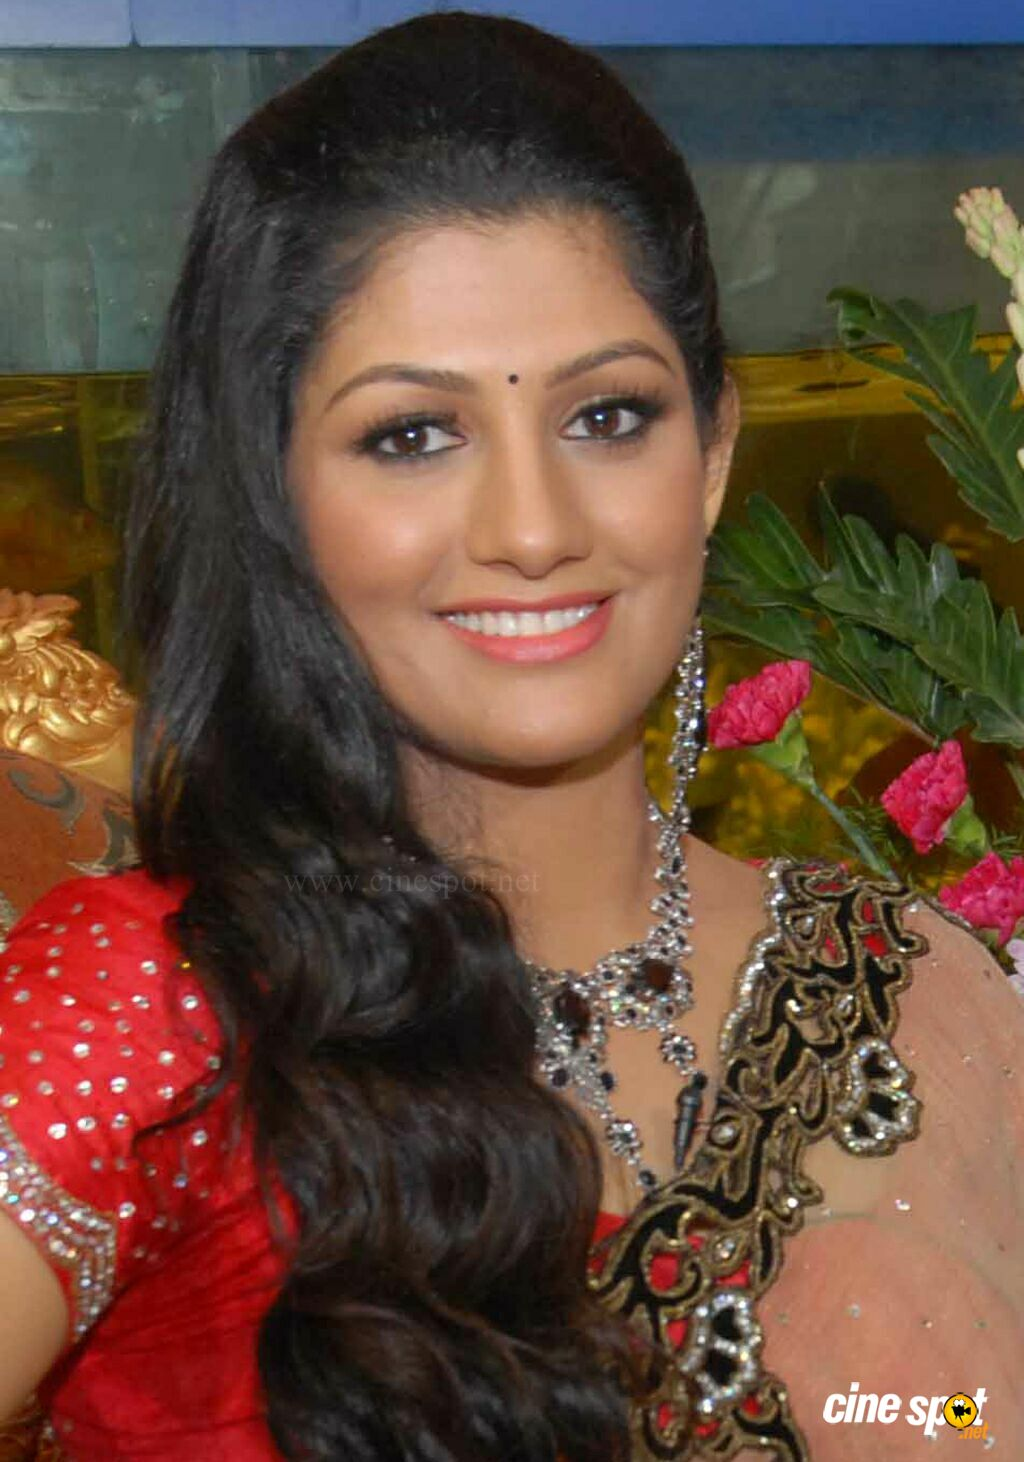 radhika kumaraswamy first husbandradhika kumaraswamy age, radhika kumaraswamy first husband, radhika kumaraswamy photos, radhika kumaraswamy house, radhika kumaraswamy marriage, radhika kumaraswamy facebook, radhika kumaraswamy wedding photos, radhika kumaraswamy marriage photos, radhika kumaraswamy latest news, radhika kumaraswamy family photos, radhika kumaraswamy hot photos, radhika kumaraswamy images, radhika kumaraswamy house in dollars colony, radhika kumaraswamy hot videos, radhika kumaraswamy divorce